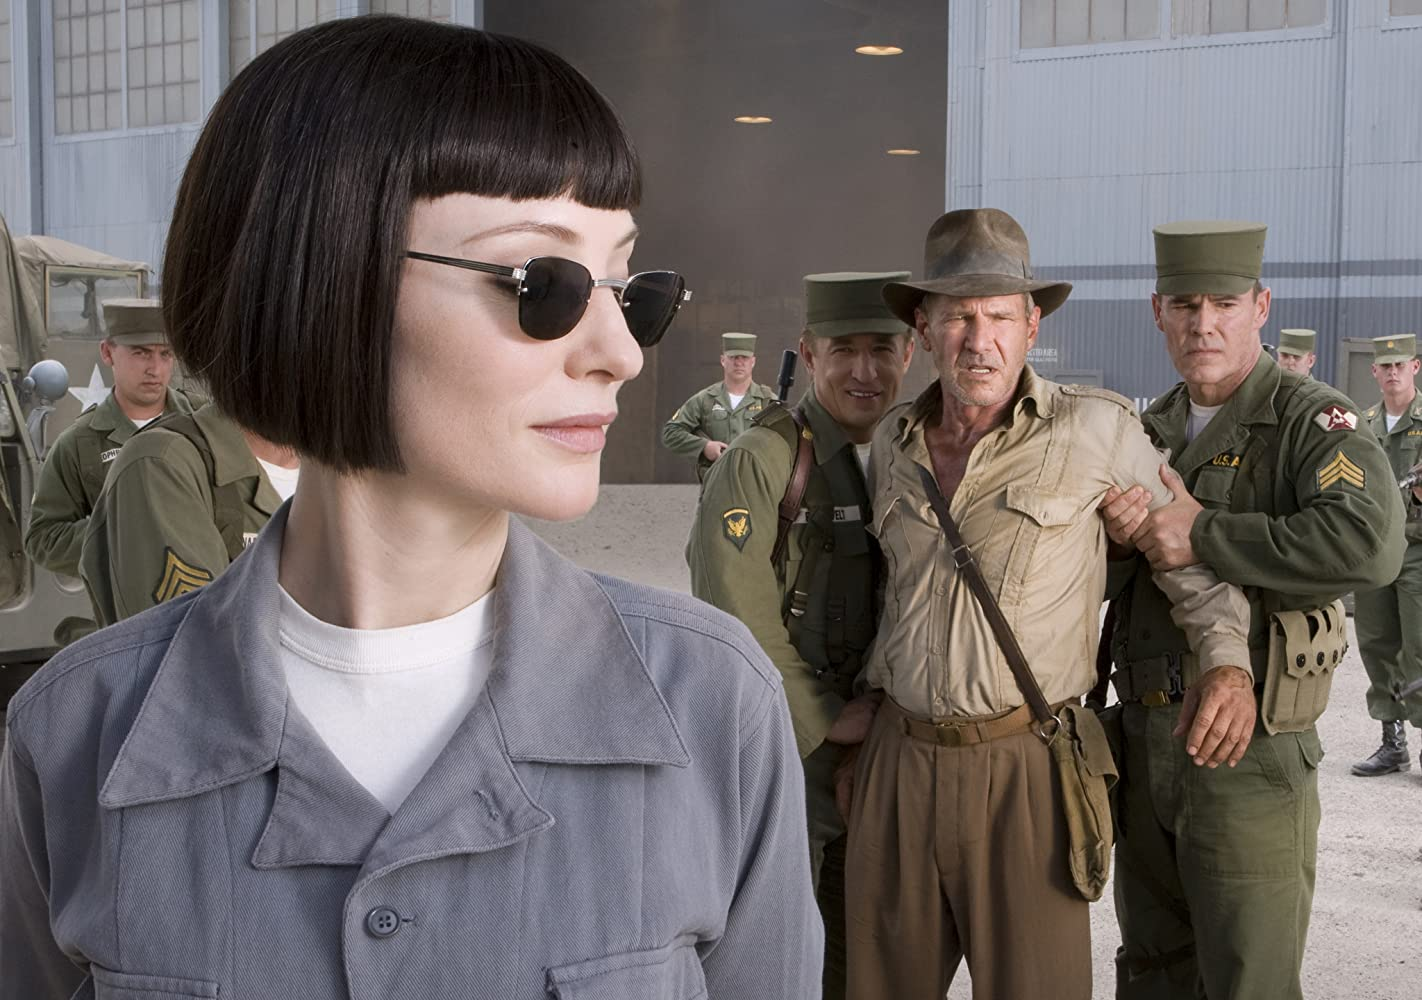 Harrison Ford, Cate Blanchett, Andrew Divoff, and Pasha D. Lychnikoff in Indiana Jones and the Kingdom of the Crystal Skull (2008)